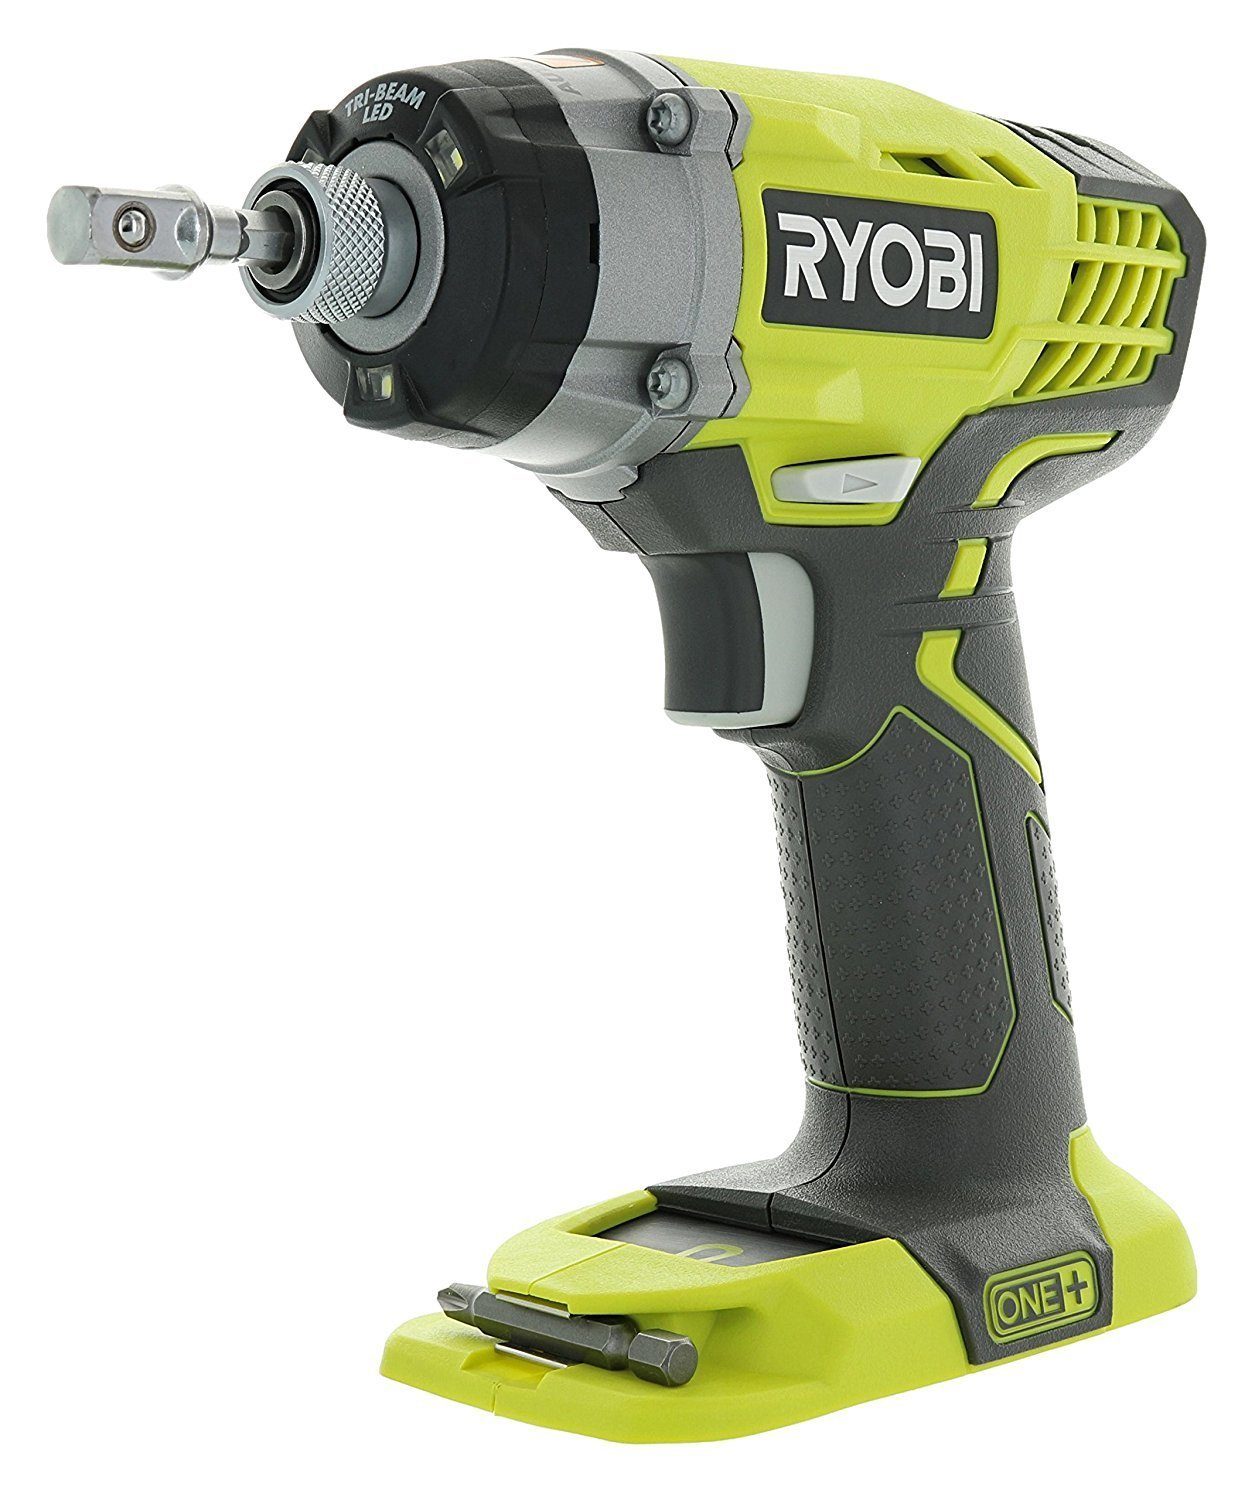 Ryobi One P236 18V 1 4 Inch 3,200 RPM 1,600 Inch Pounds Lithium Ion Cordless Impact Driver Battery Not Included, Power Tool Only Renewed